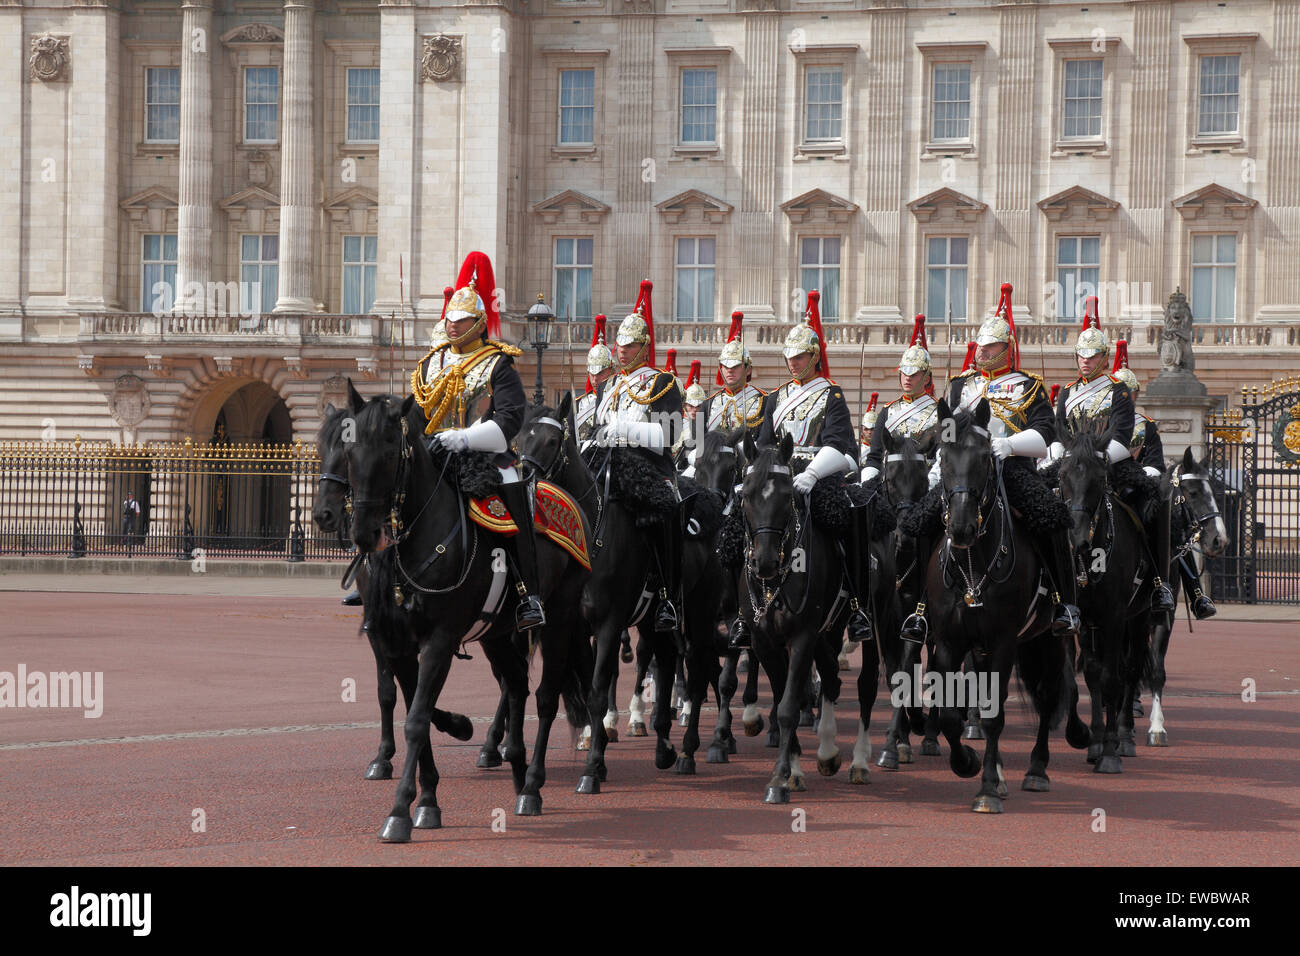 Mounted Cavalry at Buckingham Palace in London - Stock Image